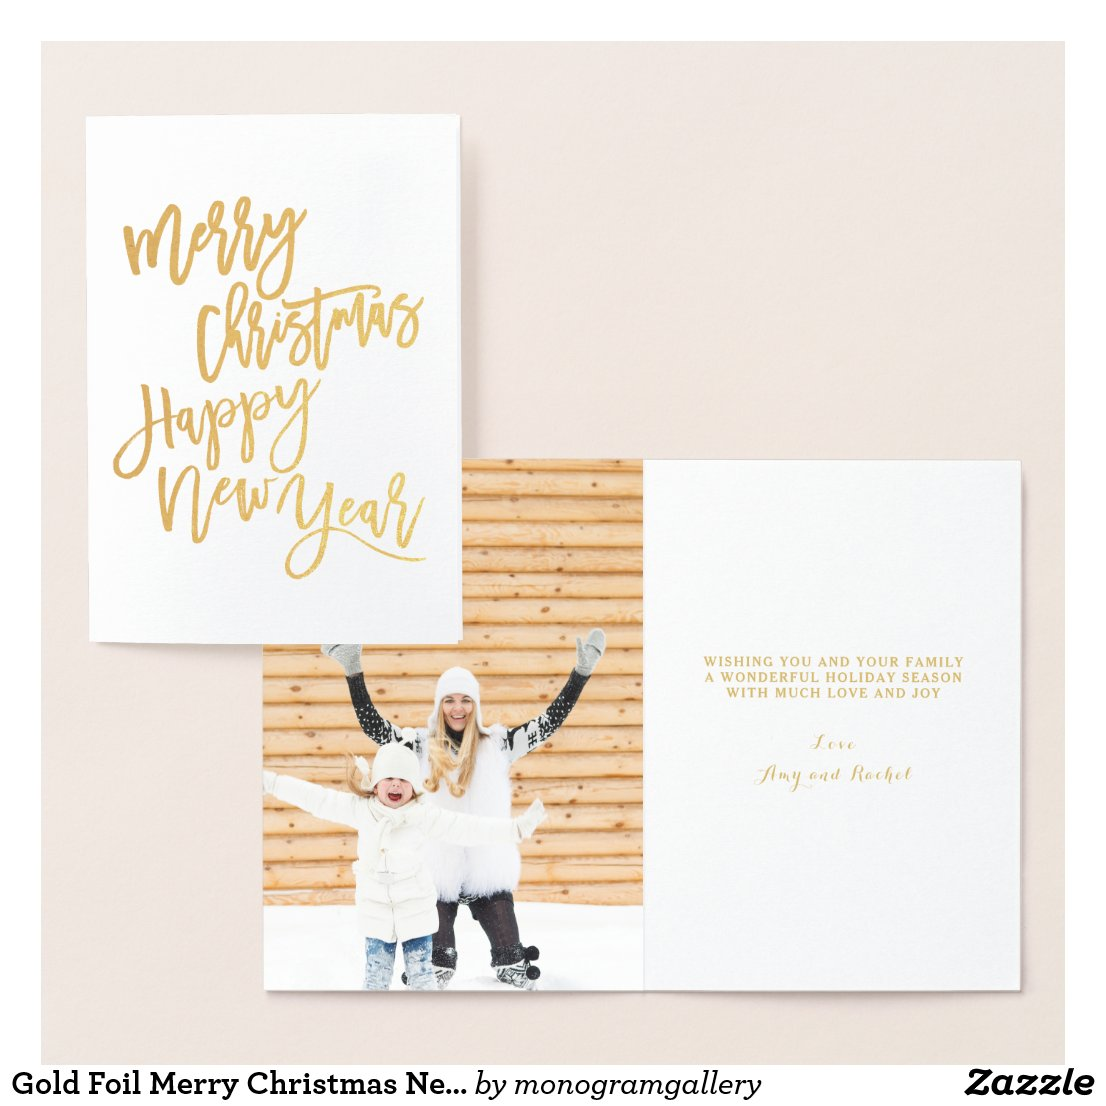 Gold Foil Merry Christmas New Year Holiday Photo Foil Card